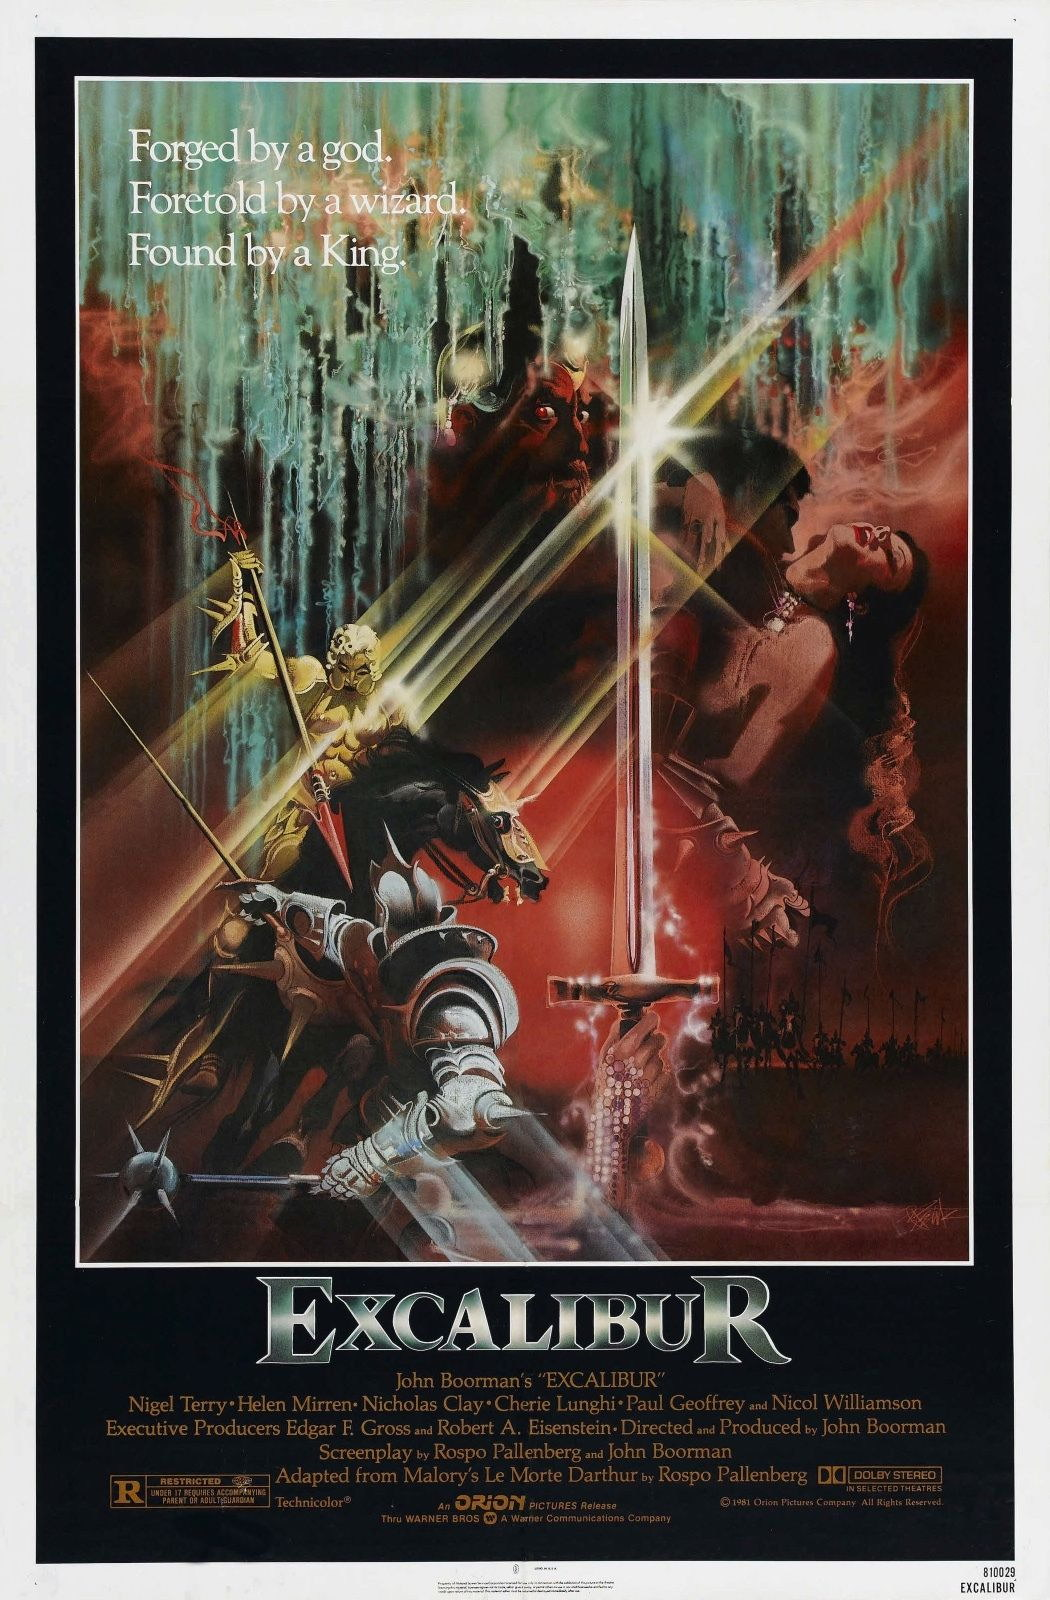 72526 Excalibur 1981 Fantasy Drama Movie Wall Print Poster Affiche